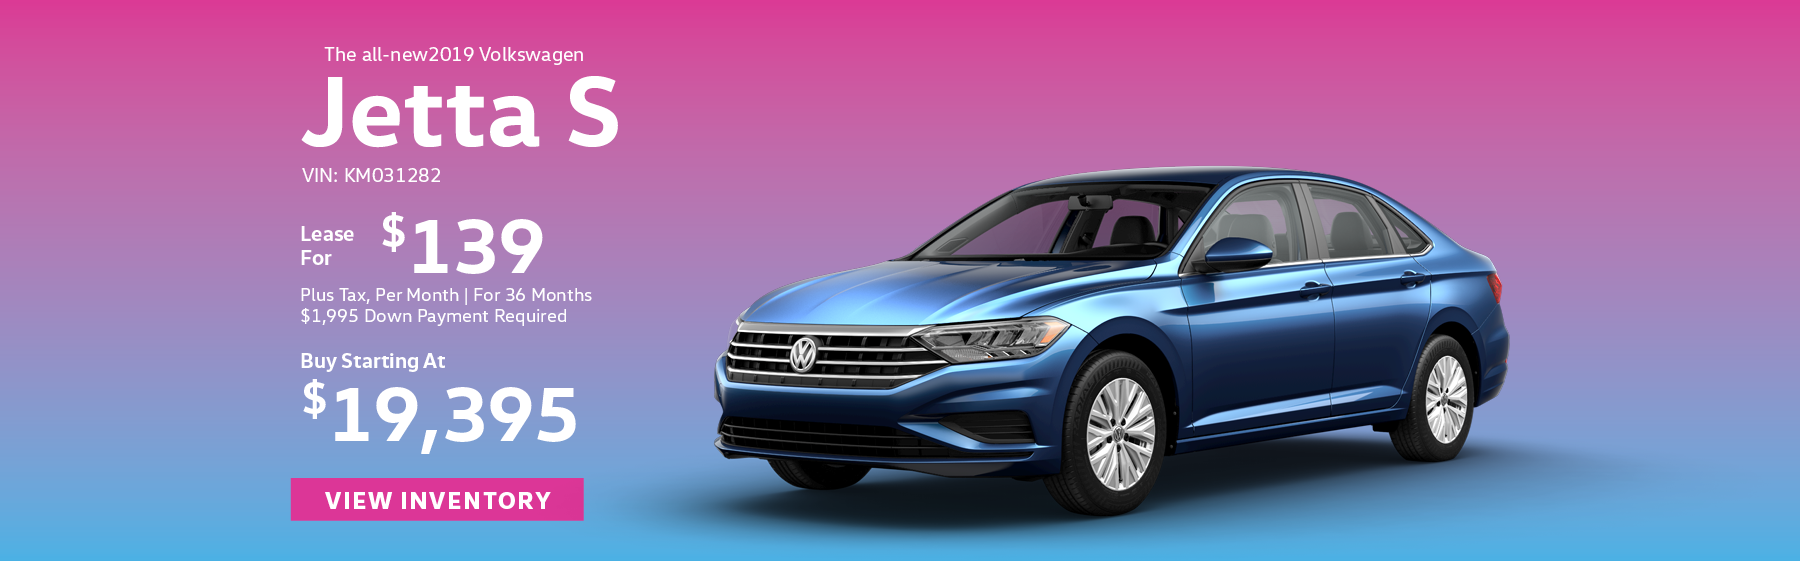 Get the all-new 2019 Volkswagen Jetta S, starting at $19,395, or lease for $139 per month, plus tax for 36 months. Click here to view inventory.